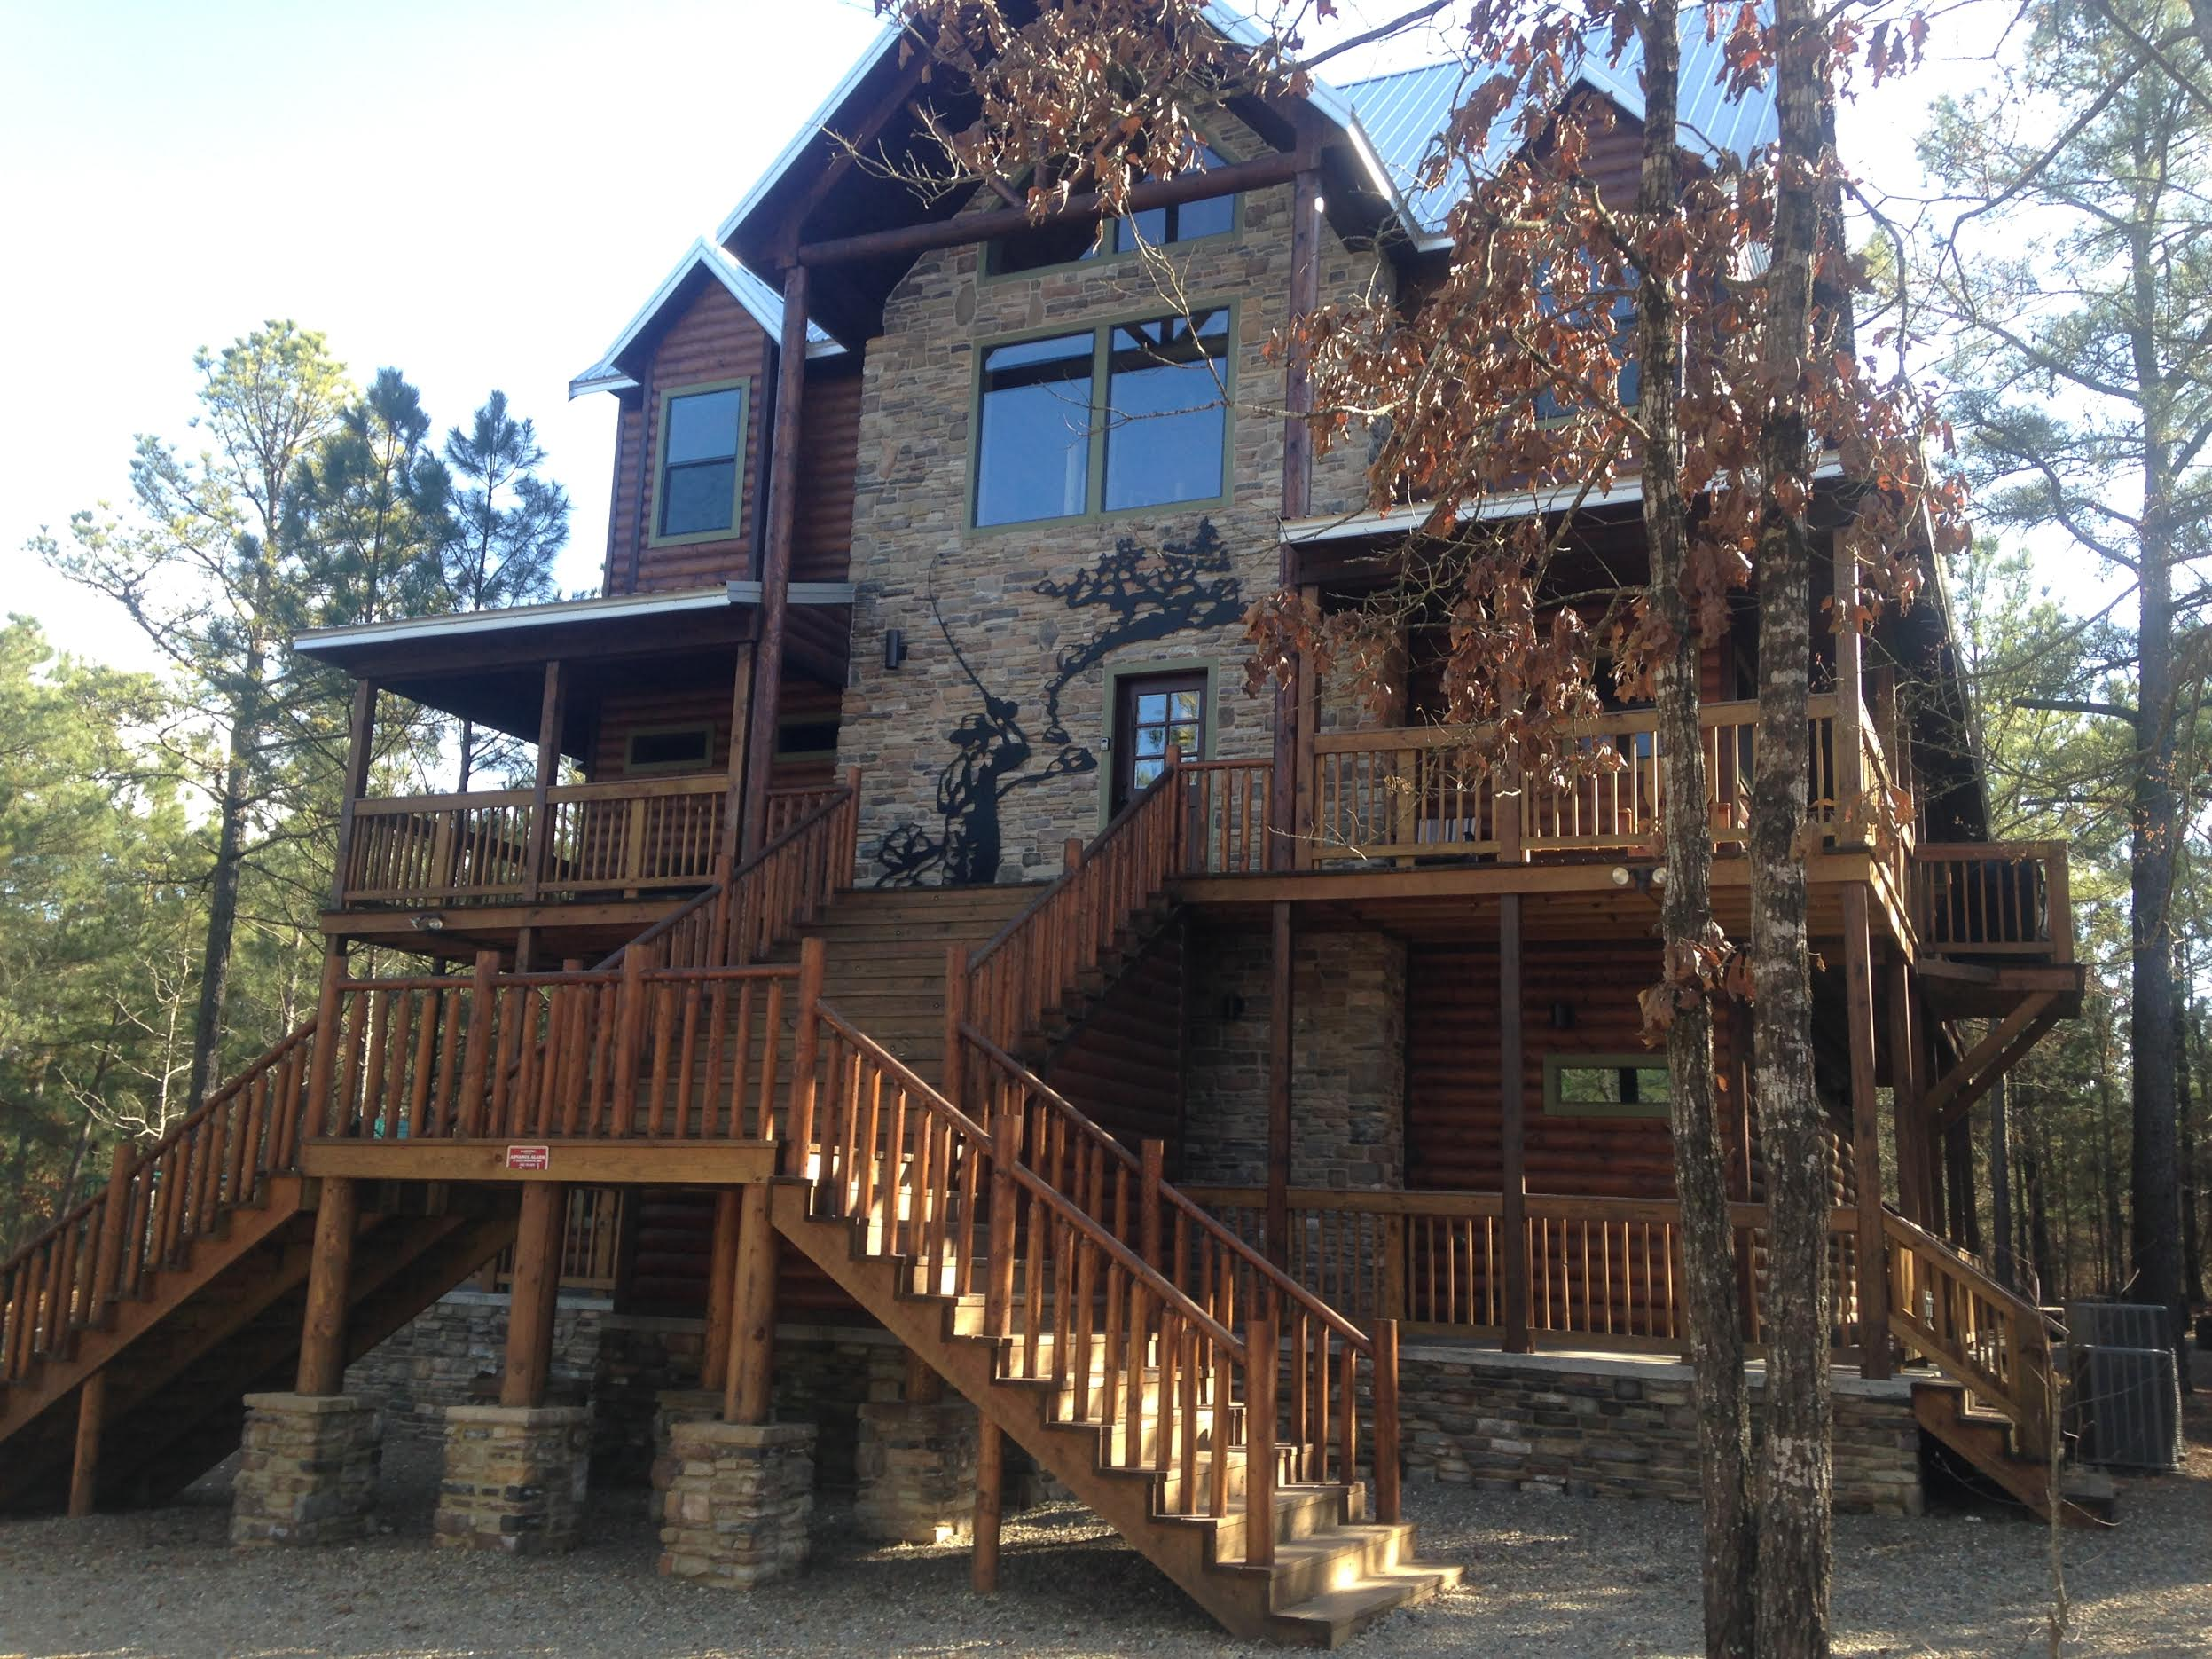 Charmant Trout Creek Lodge Is Your New Broken Bow Vacation Connection For A Large,  Beautiful Log Cabin Which Offers Unique Adventure And Fun For The Children,  ...